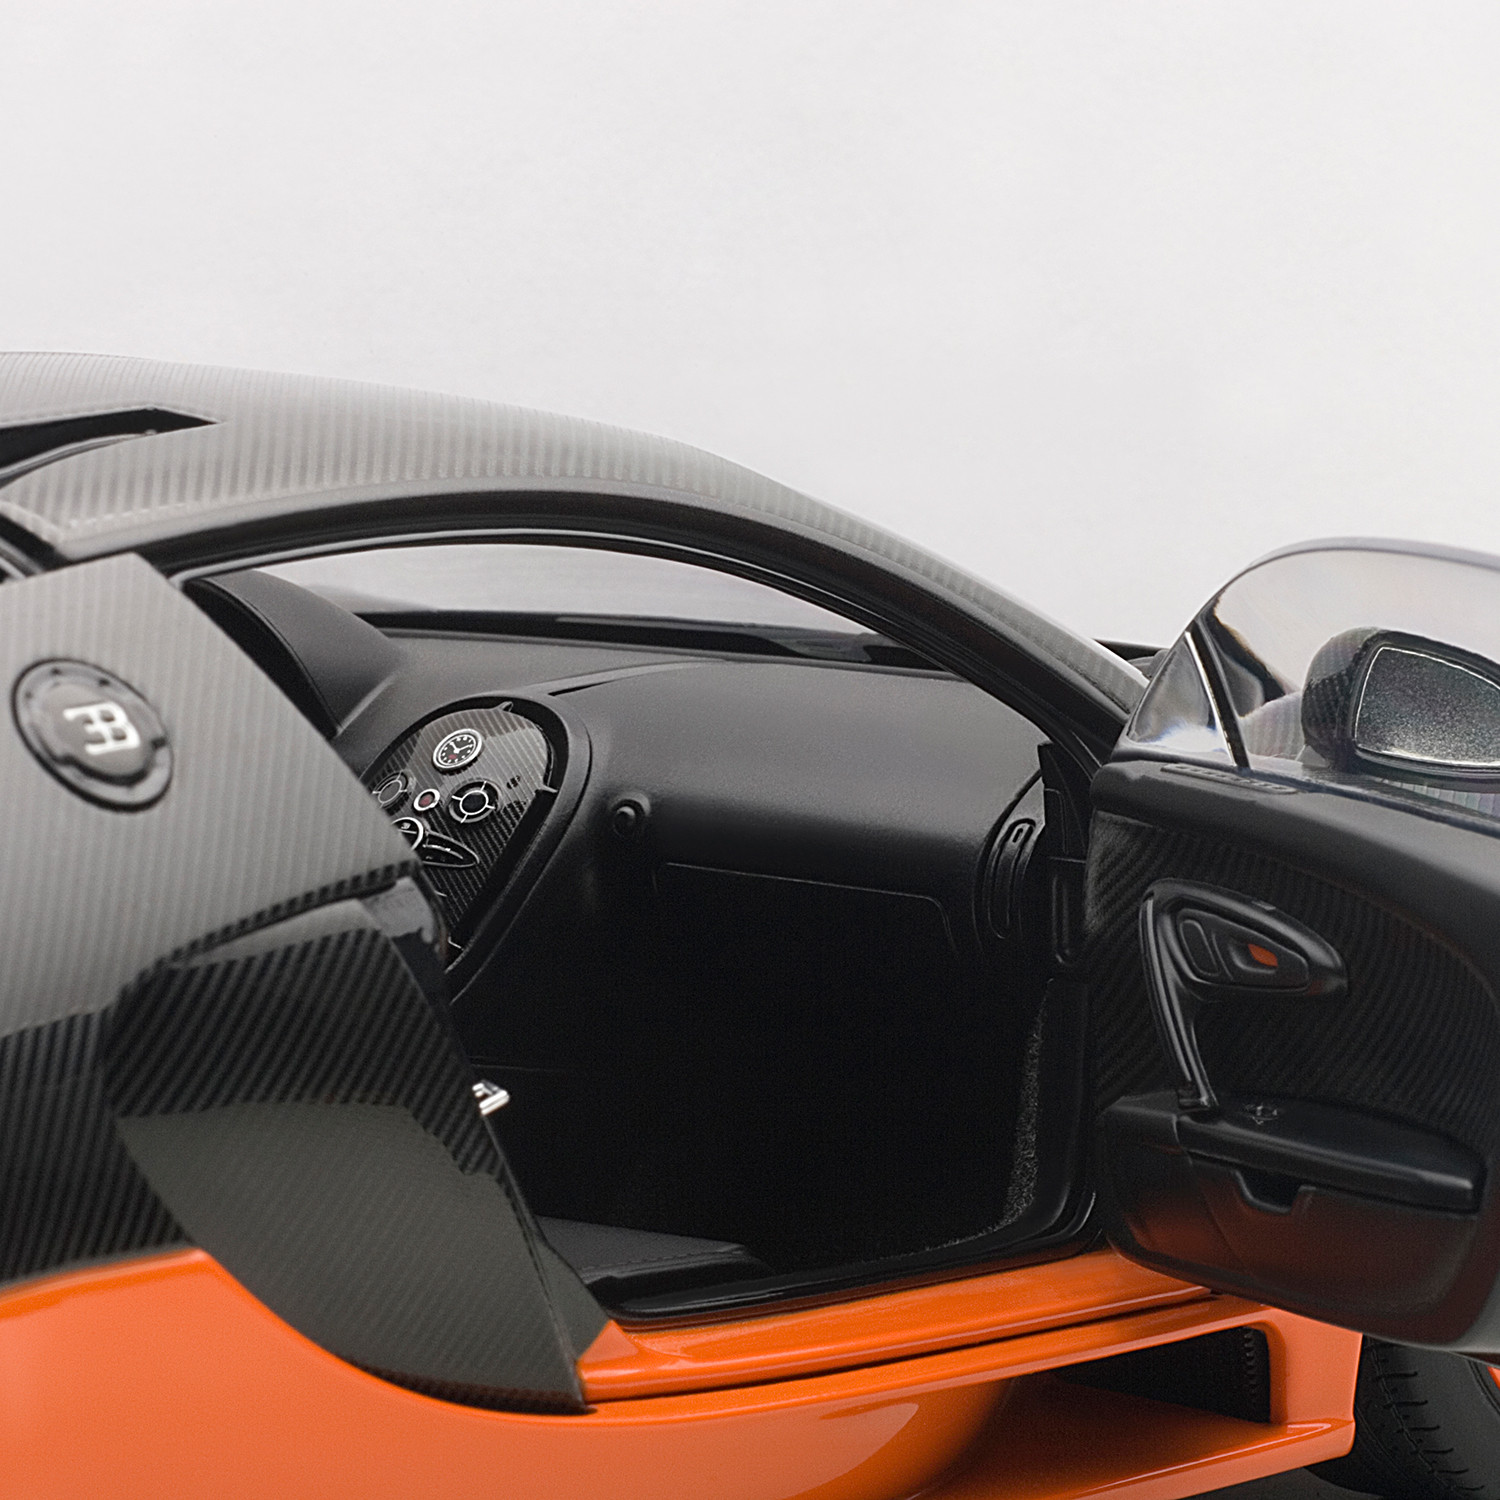 Bugatti Veyron Super Sport Black Orange: Bugatti Veyron Super Sport (Black & Orange)